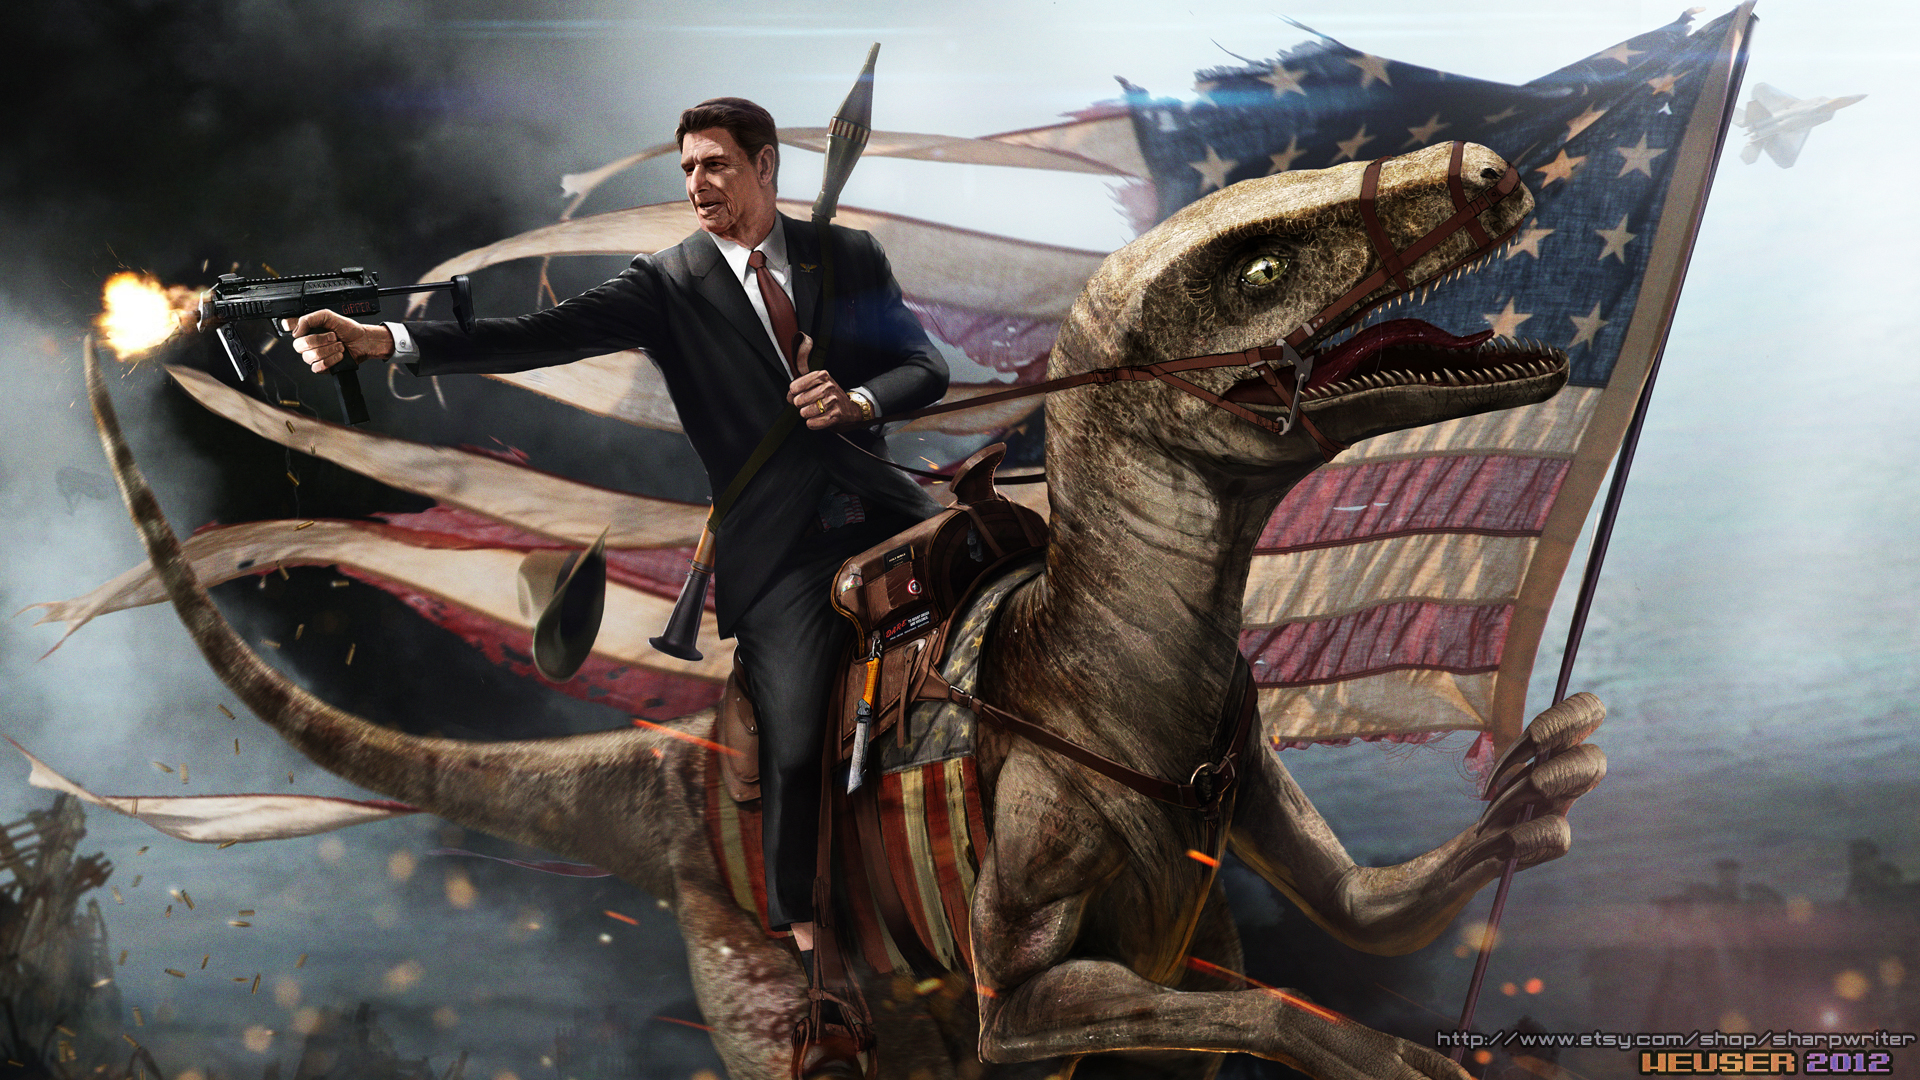 ronald reagan riding a velociraptor by sharpwriter d55rsh71 Creative Political Illustrations by Jason Heuser